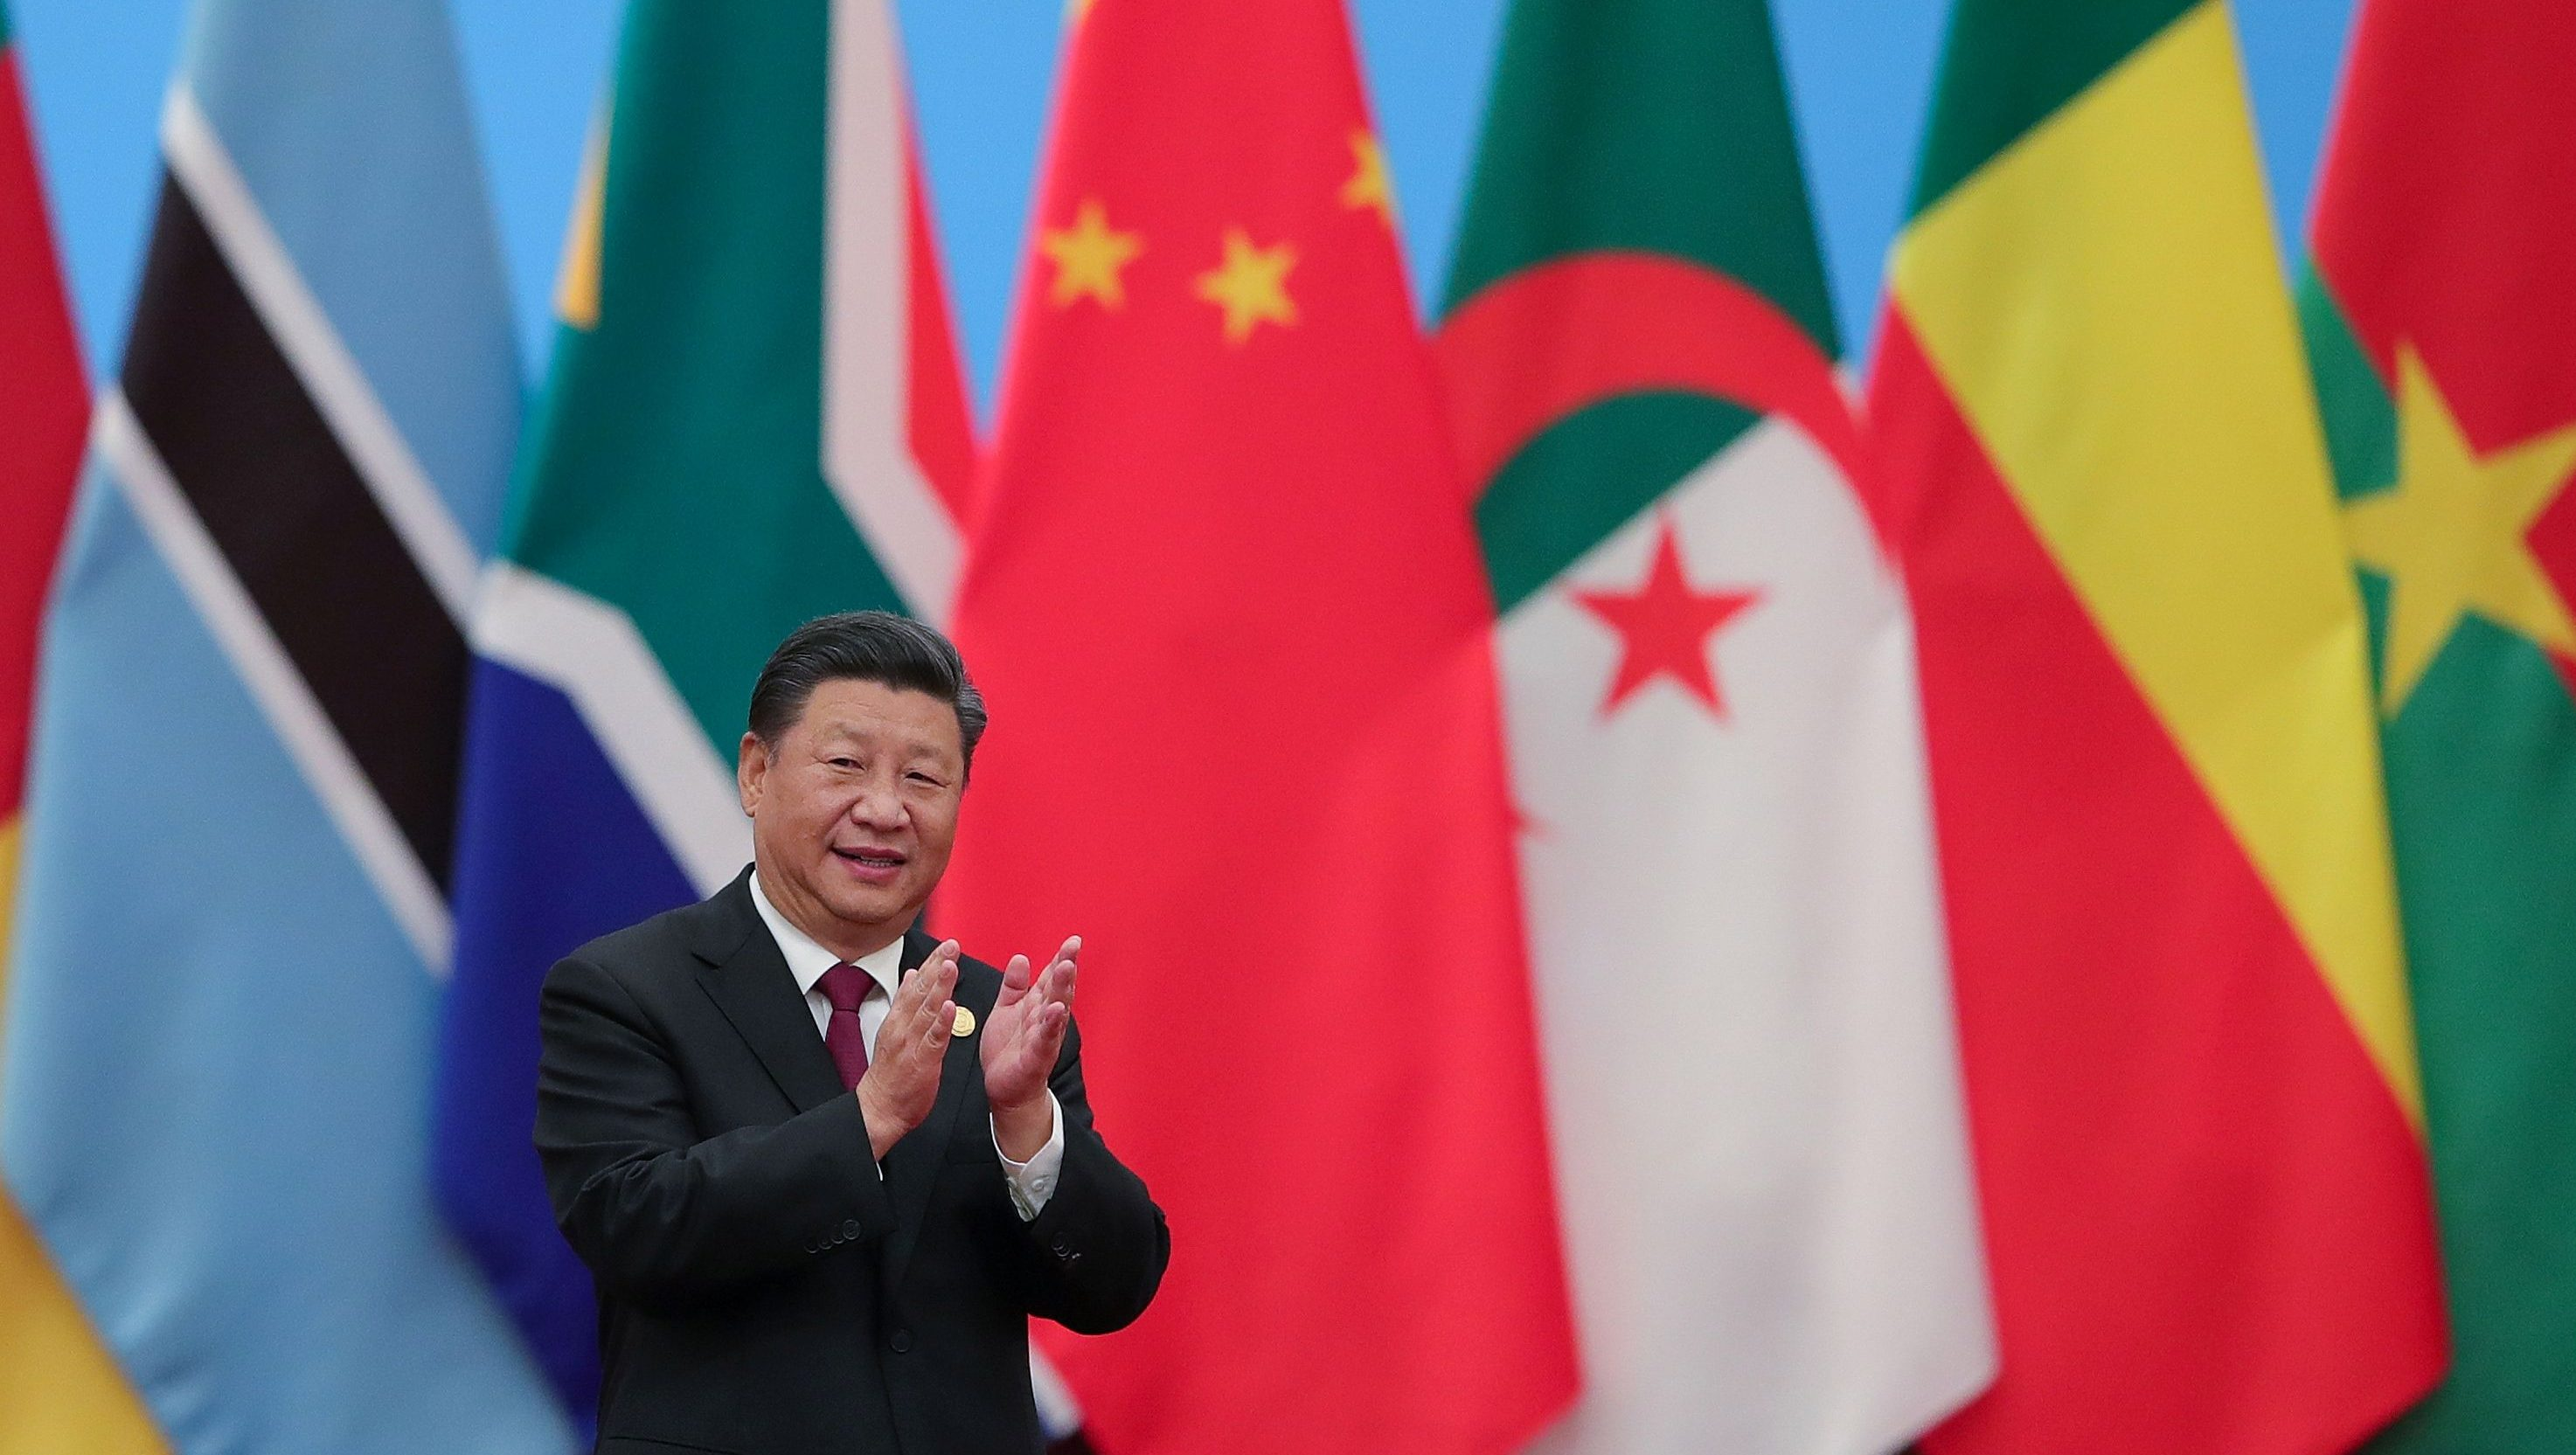 Chinese President Xi Jinping attends the 2018 Beijing Summit Of The Forum On China-Africa Cooperation - Round Table Conference at at the Great Hall of the People in Beijing on September 4, 2018 in Beijing, China